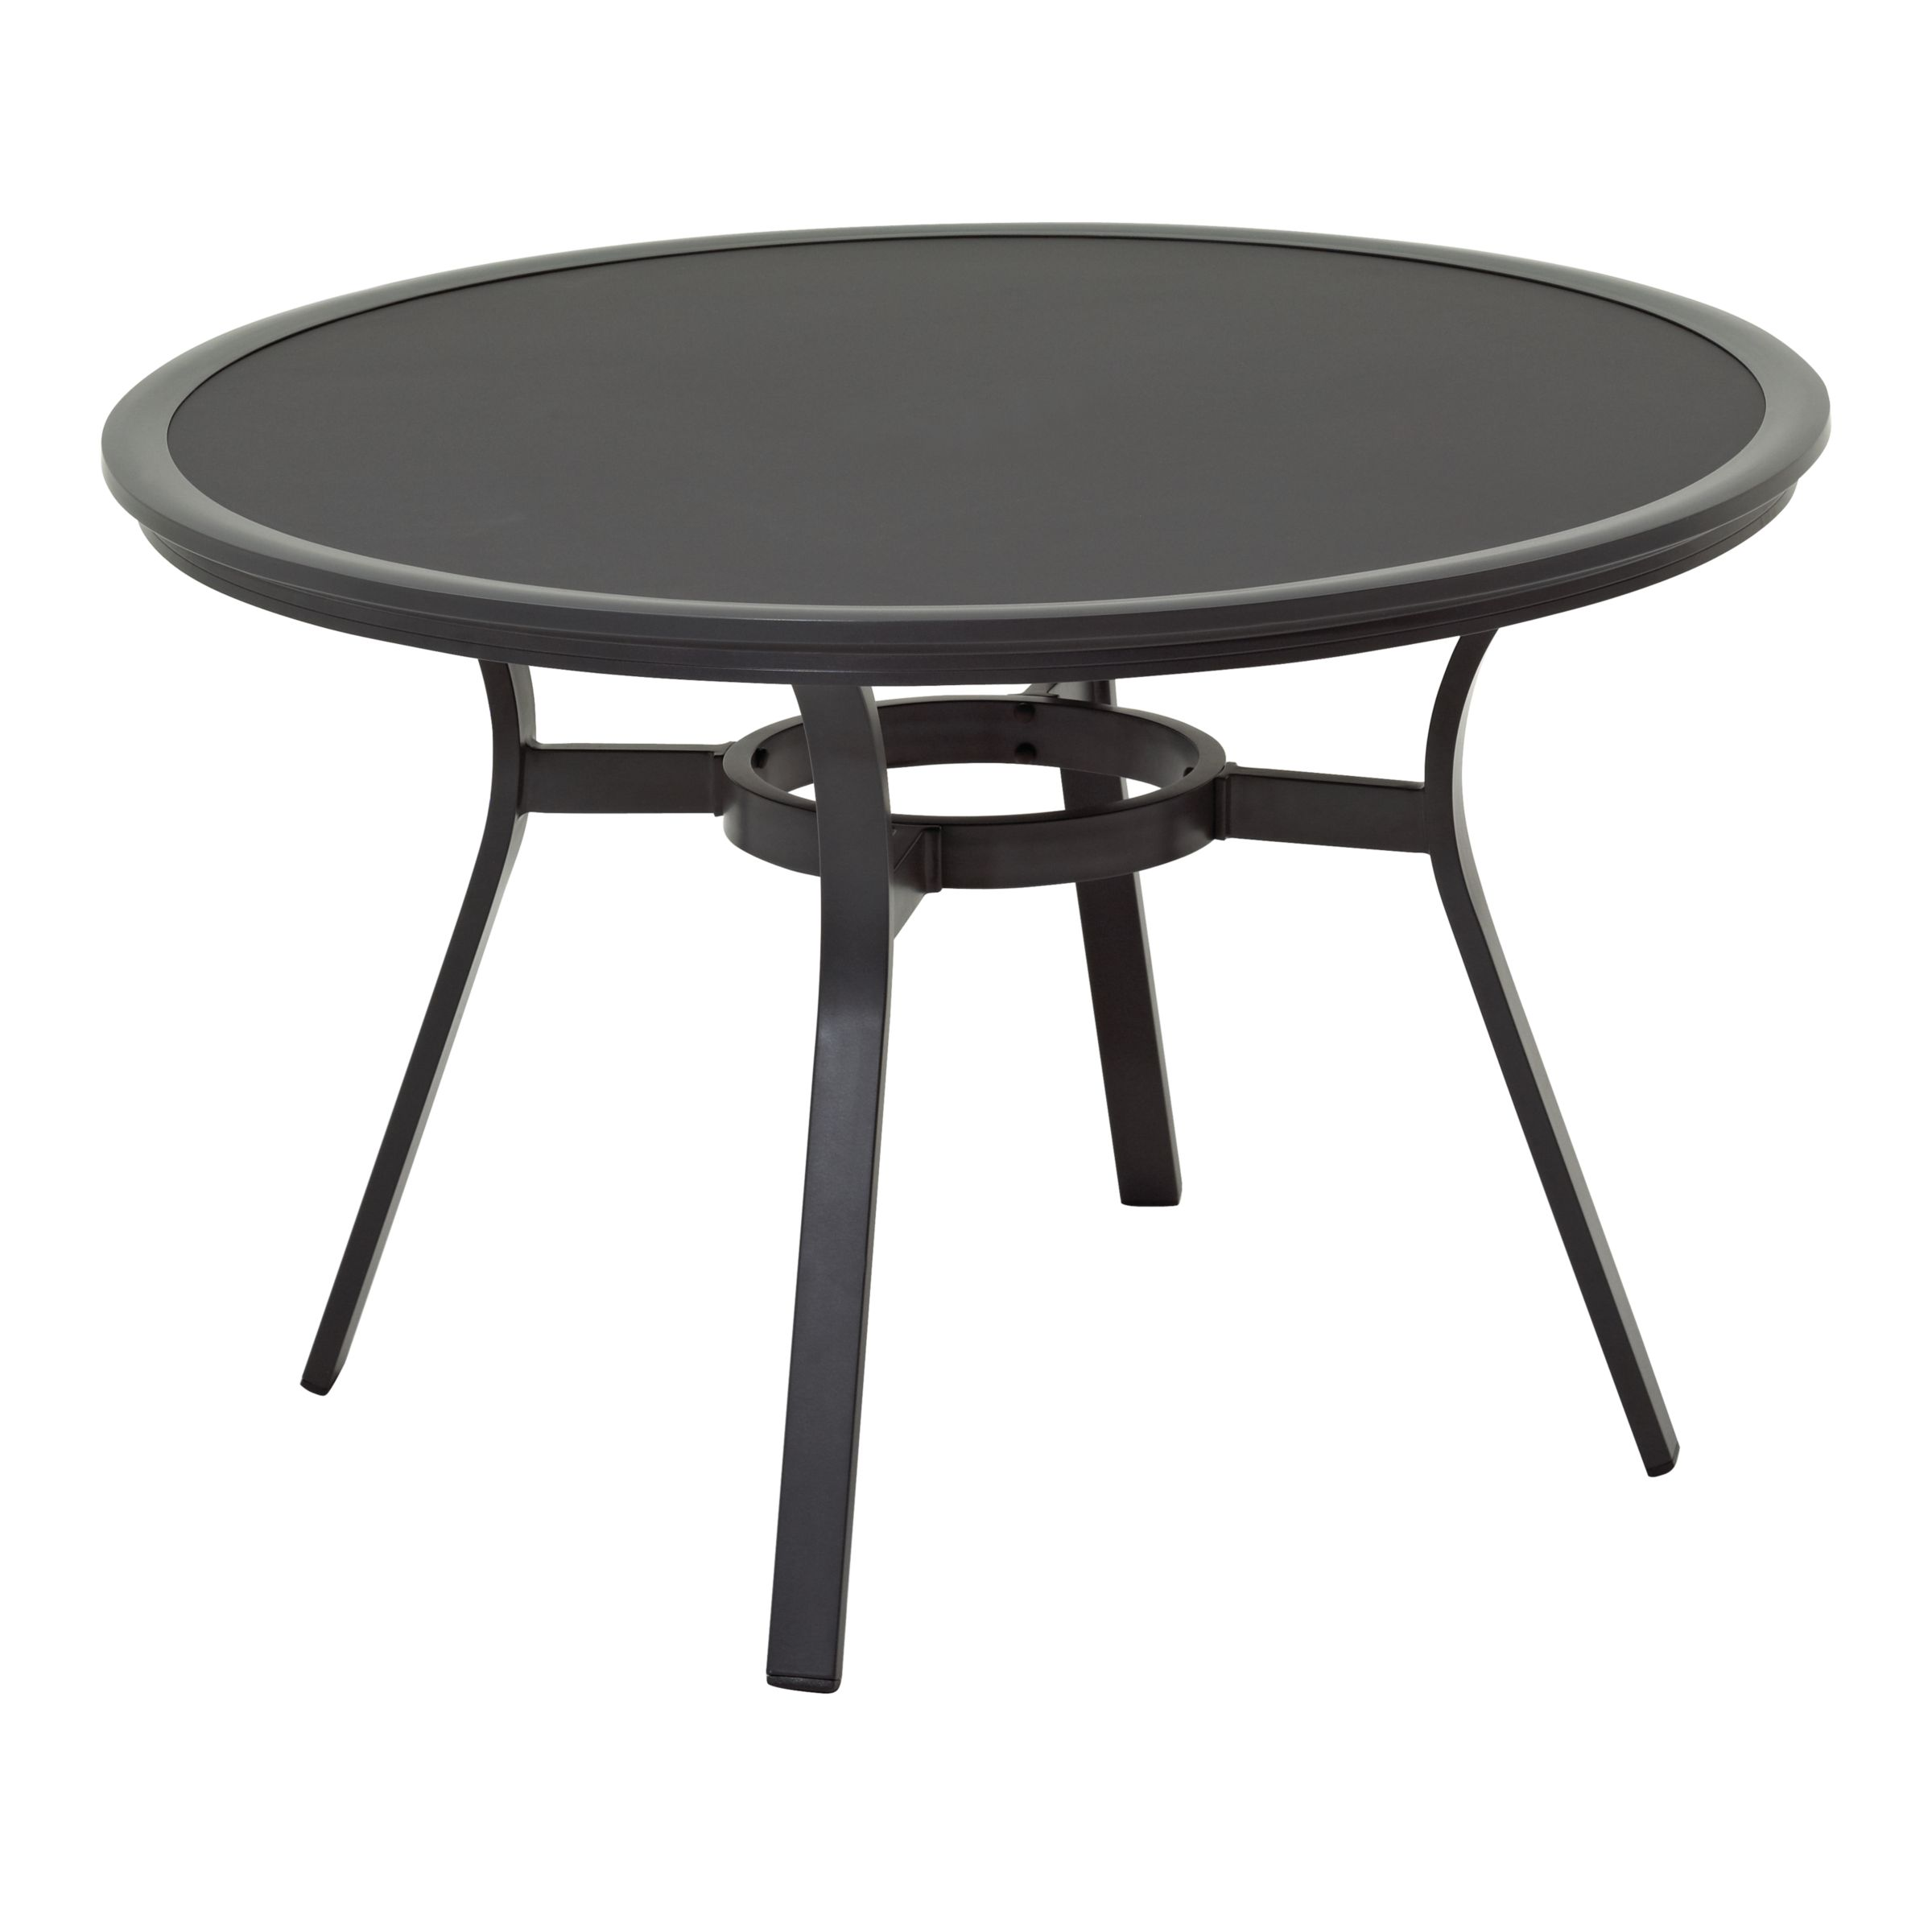 Round glass table top Shop for cheap Tables and Save online : 231230326zoom from research.priceinspector.co.uk size 1600 x 1600 jpeg 110kB